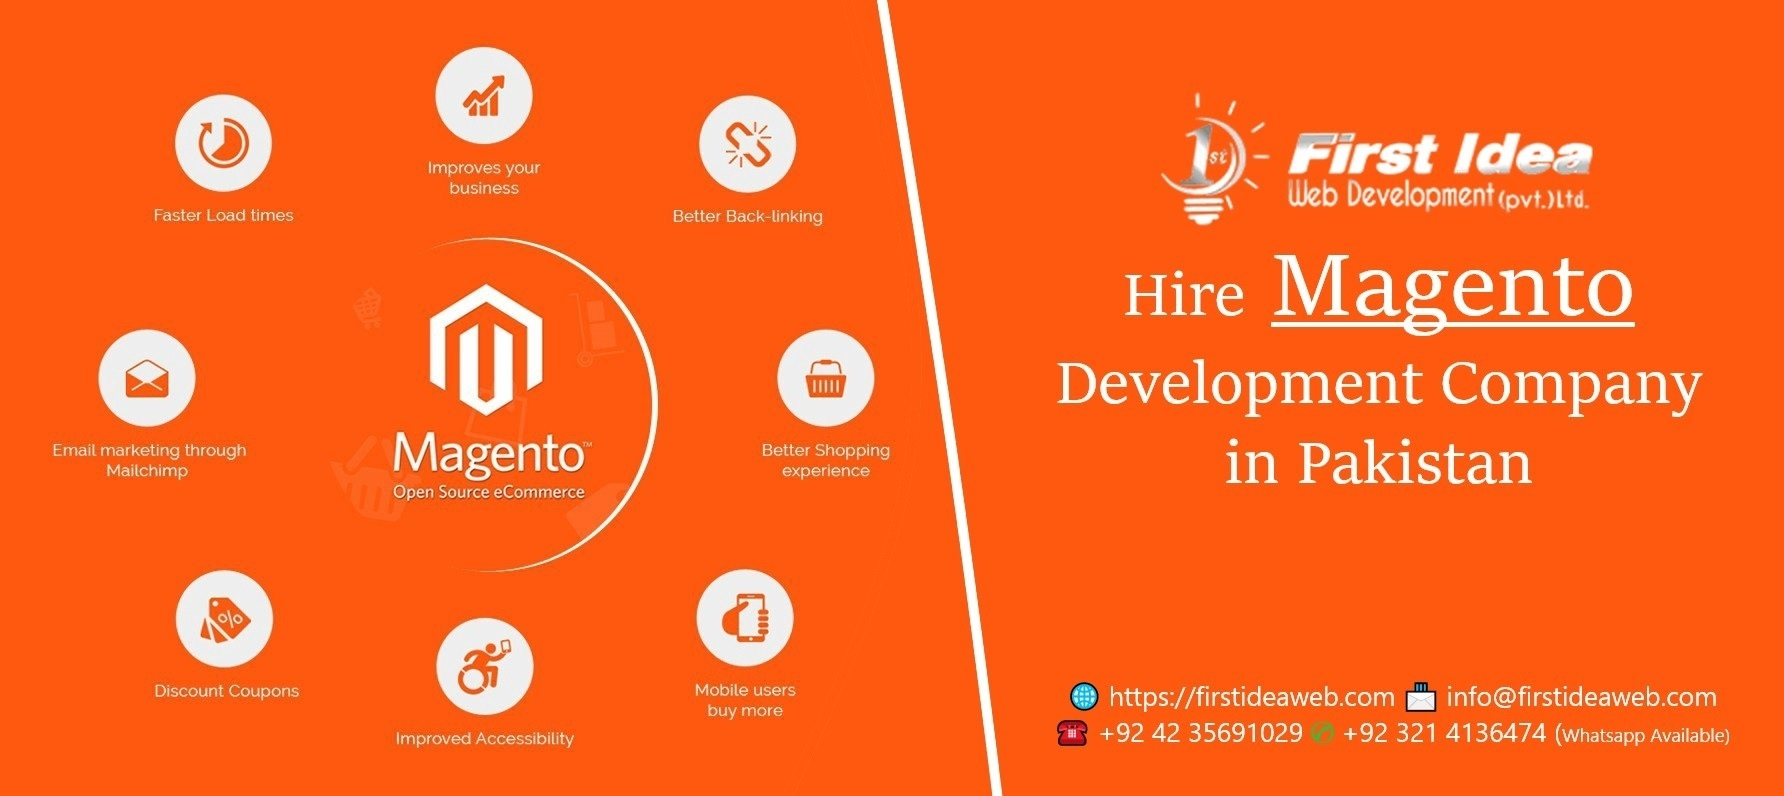 Hire Magento freelancer from best development company